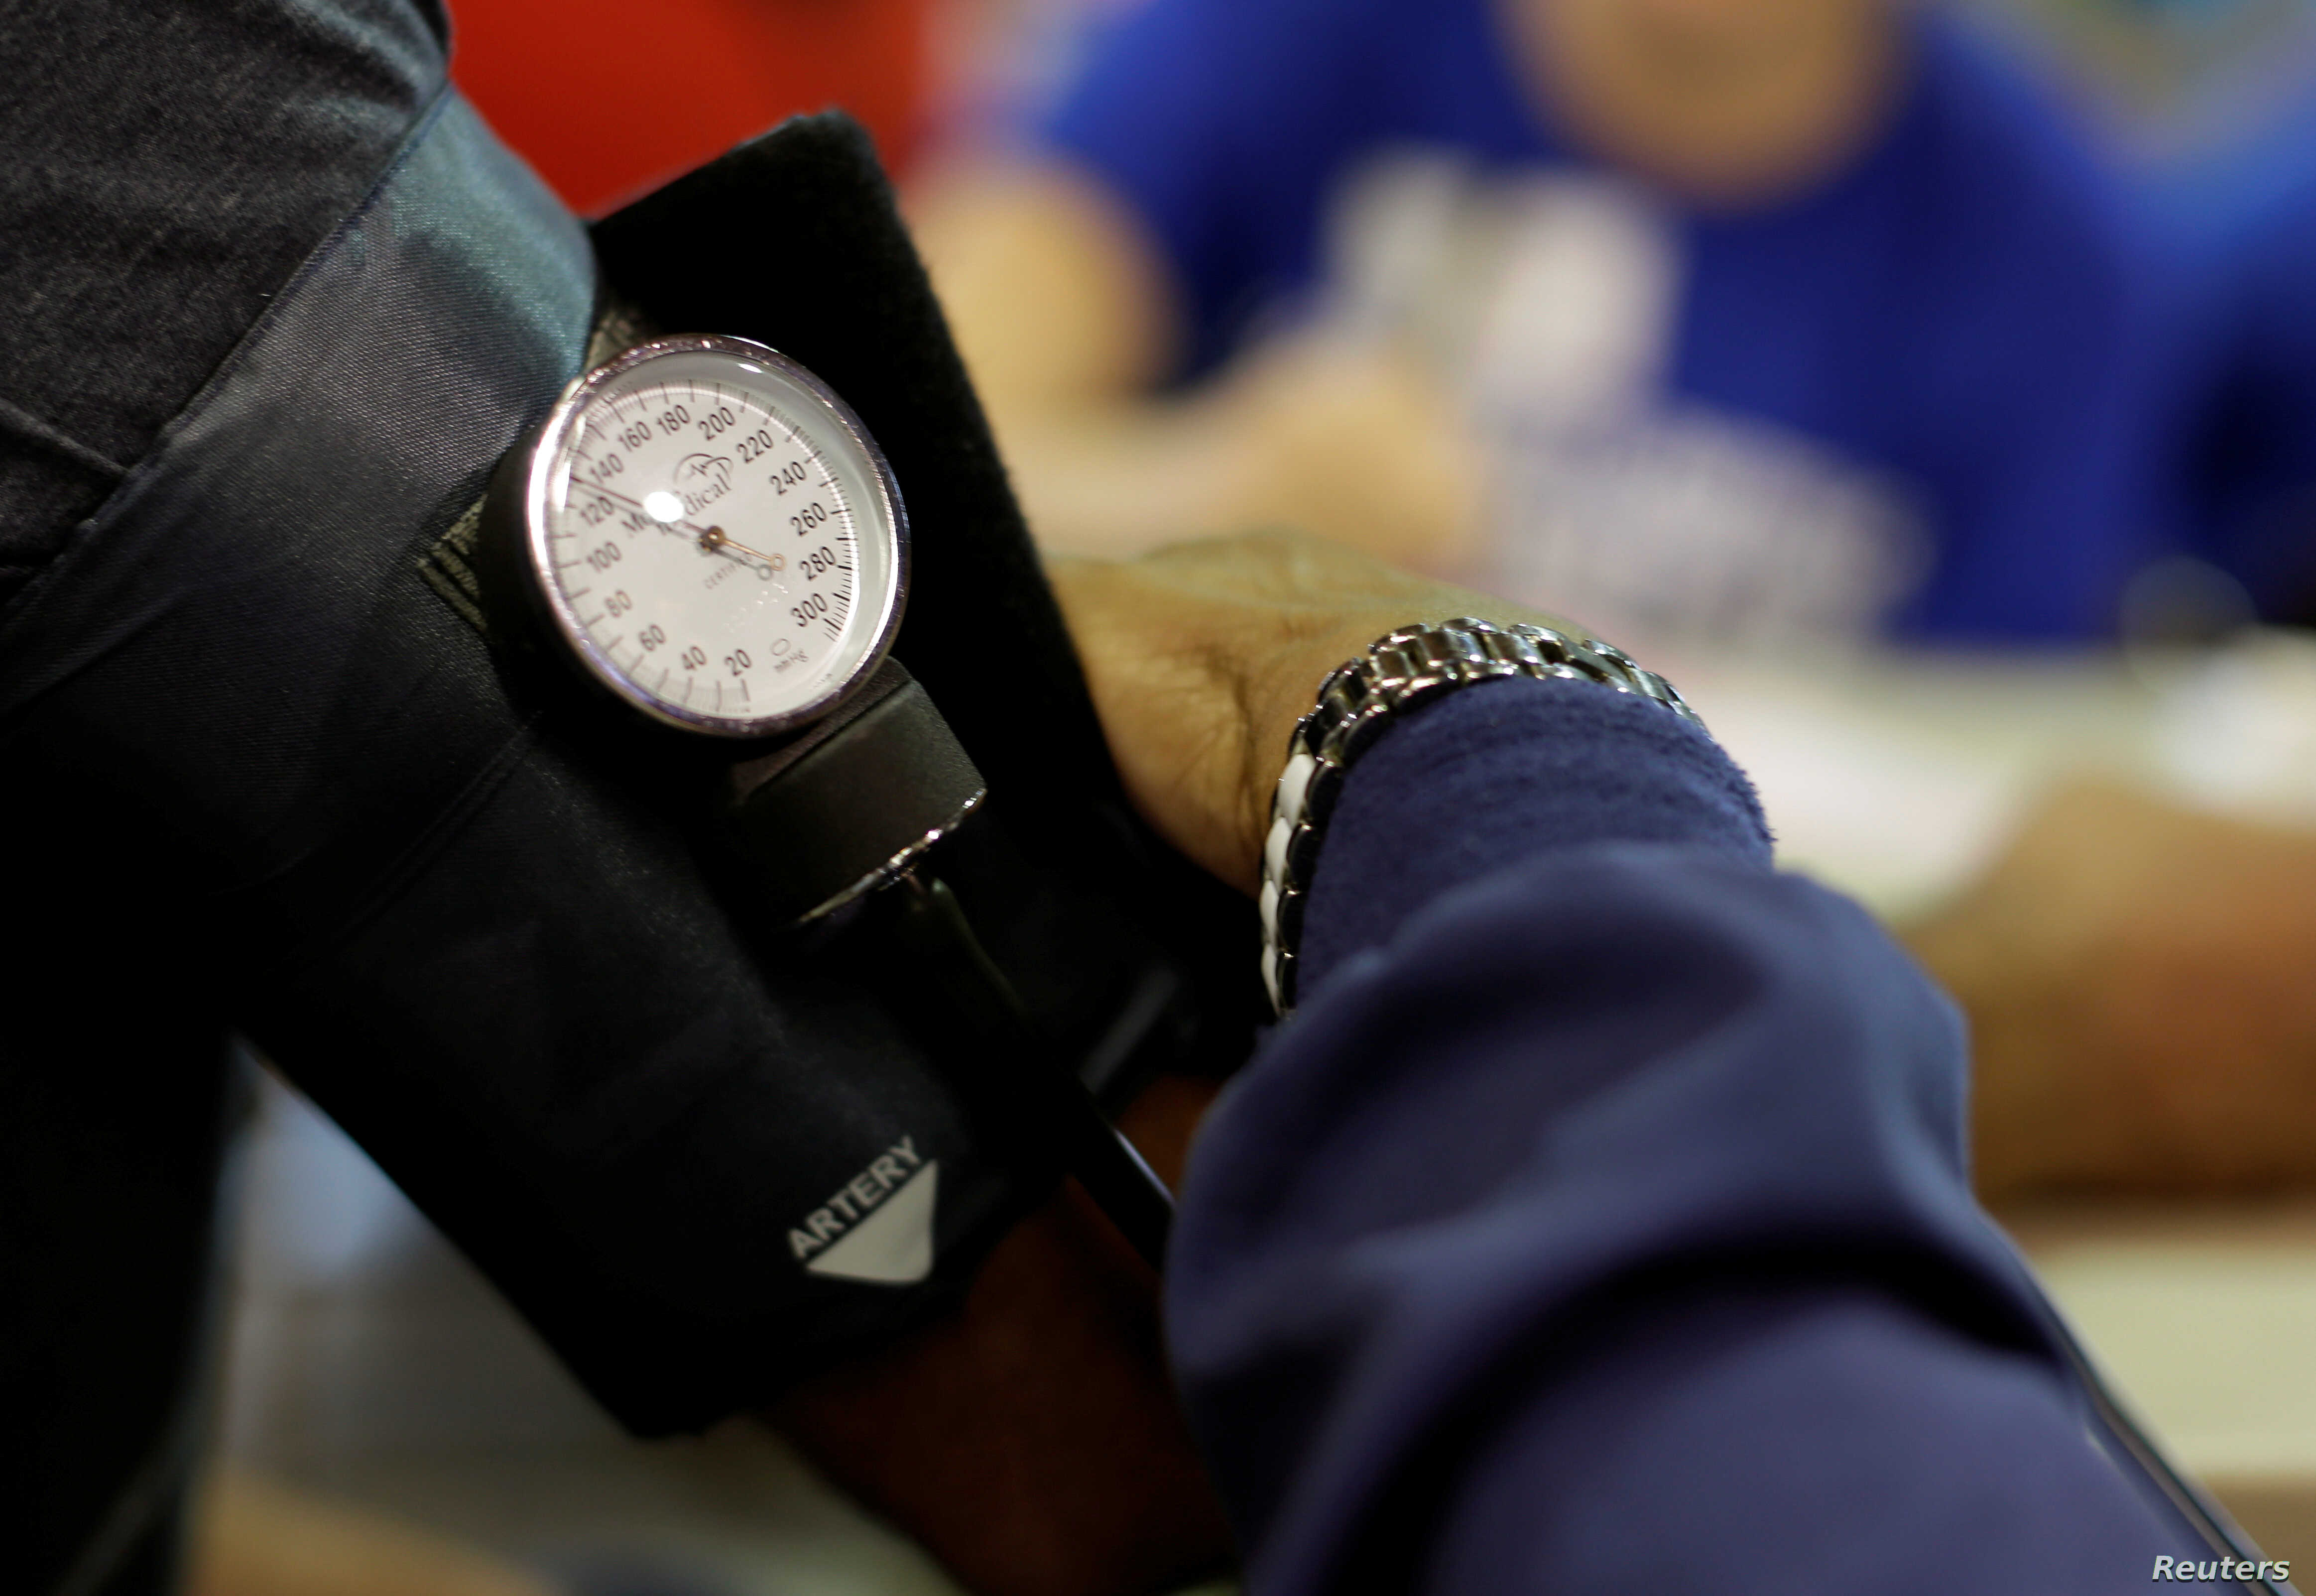 FDA: More Blood Pressure Drugs May Have Shortages After